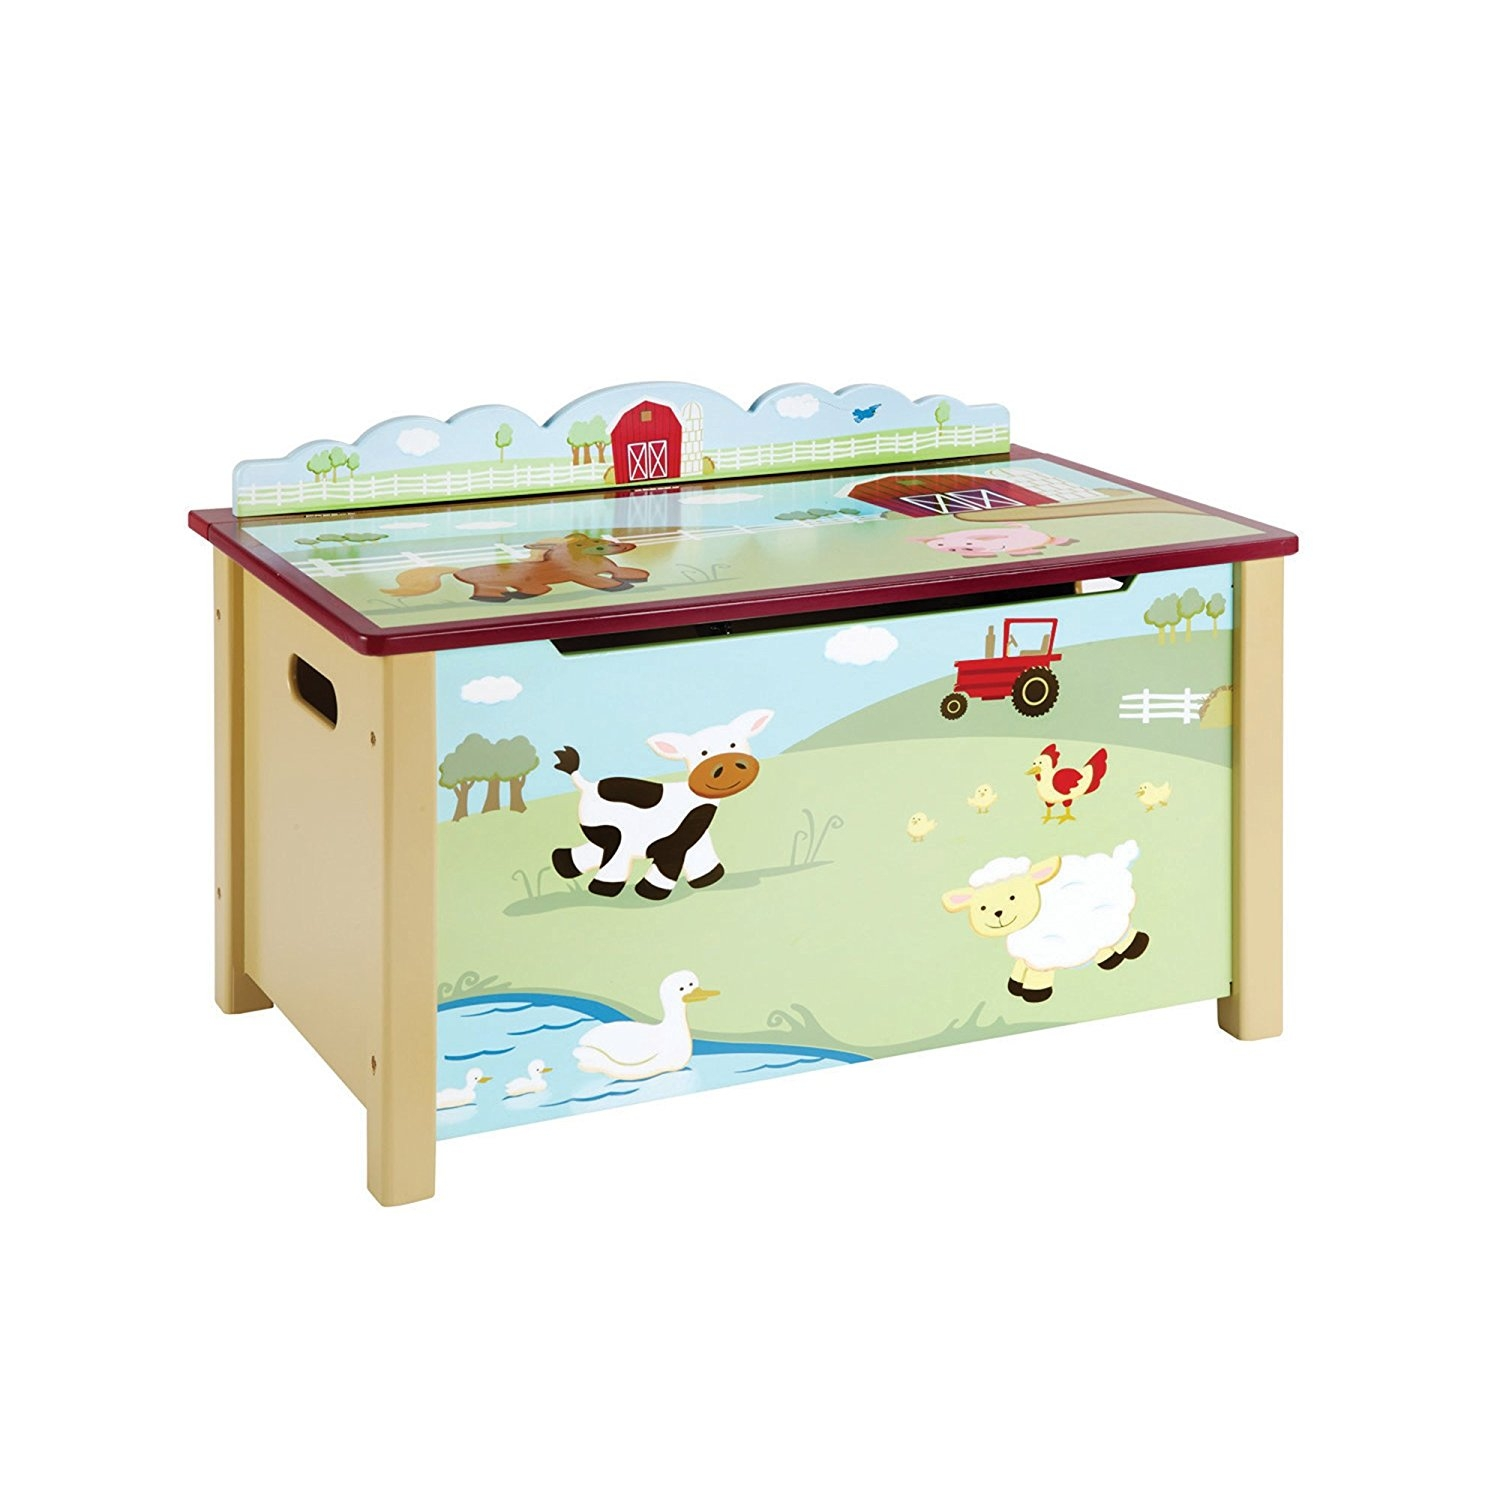 Guidecraft Wood Hand-painted Farm Friends Toy Box G86704